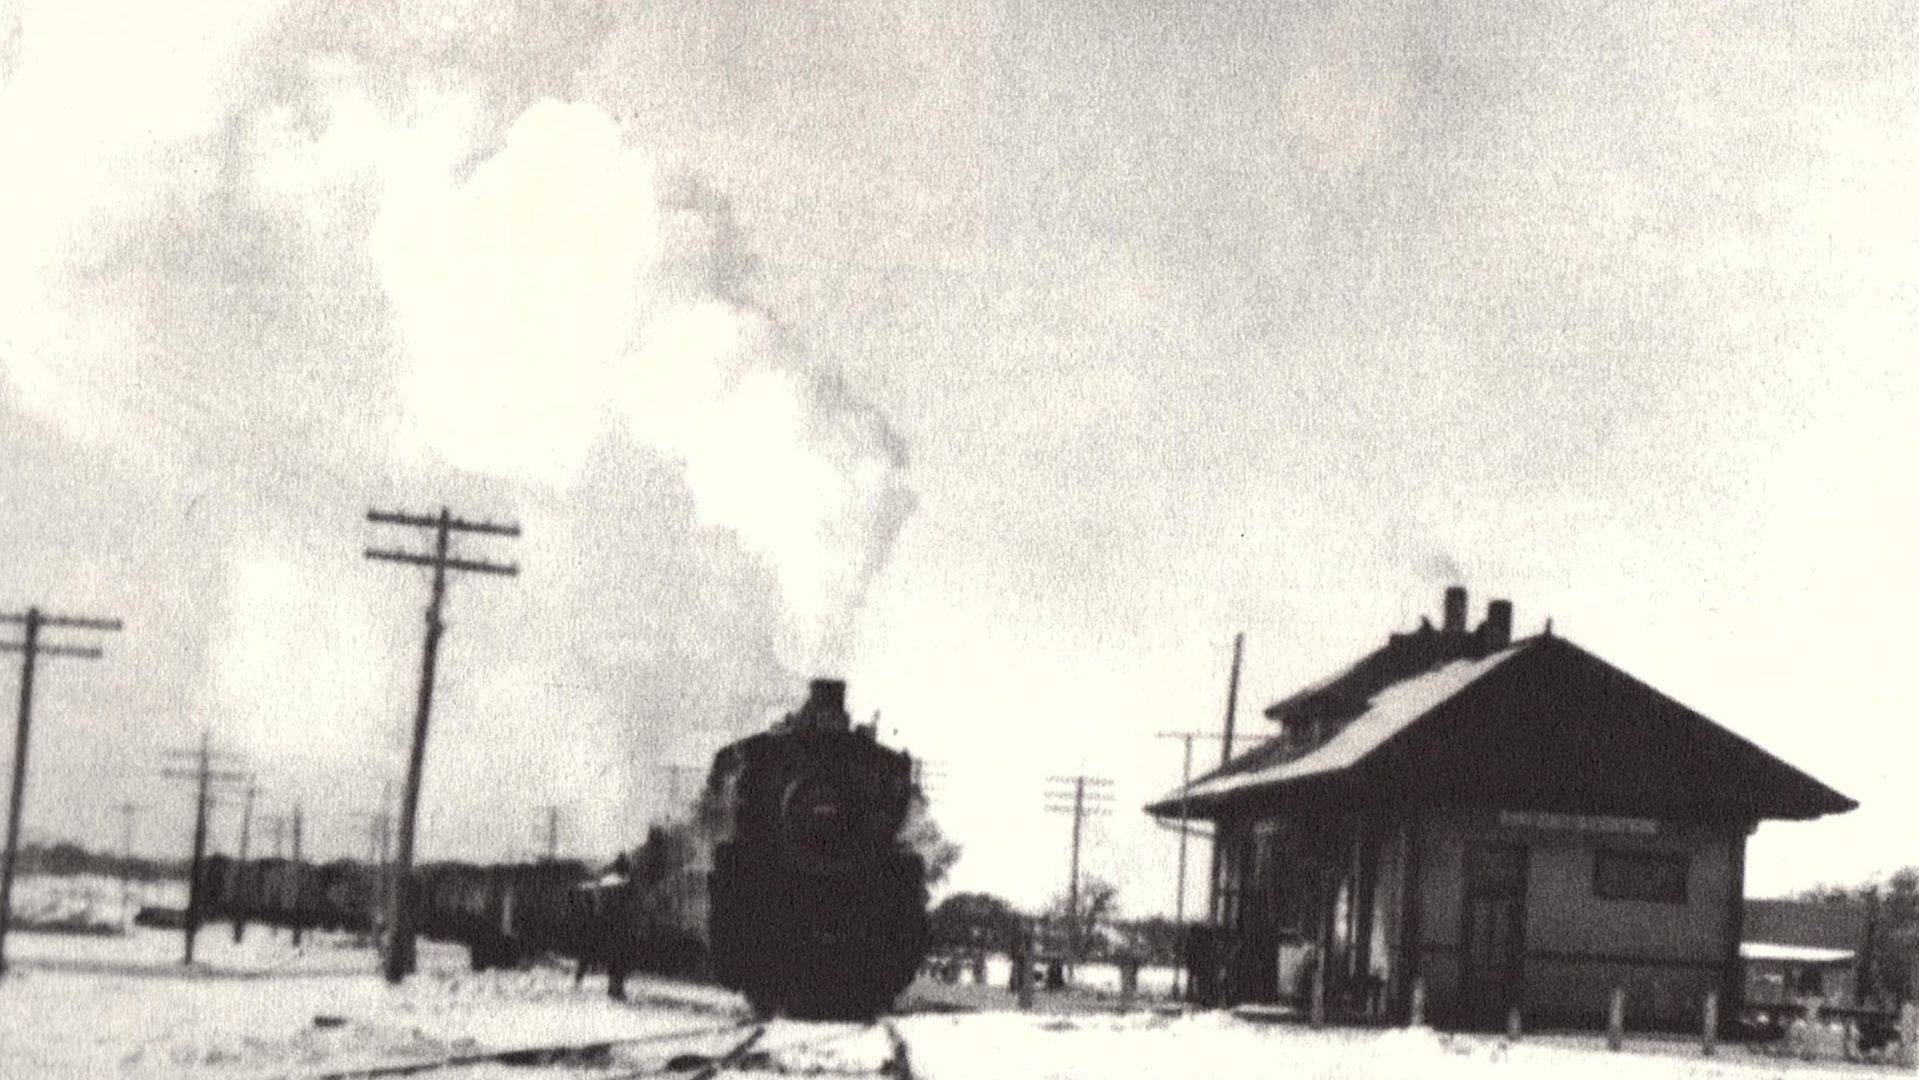 A steam engine rolls into the old Leander train station in the 1920s. The Chamber of Commerce is working with the Leander City Council to create concrete steam engines to be placed around the city to celebrate Leander's founding as a railroad town.